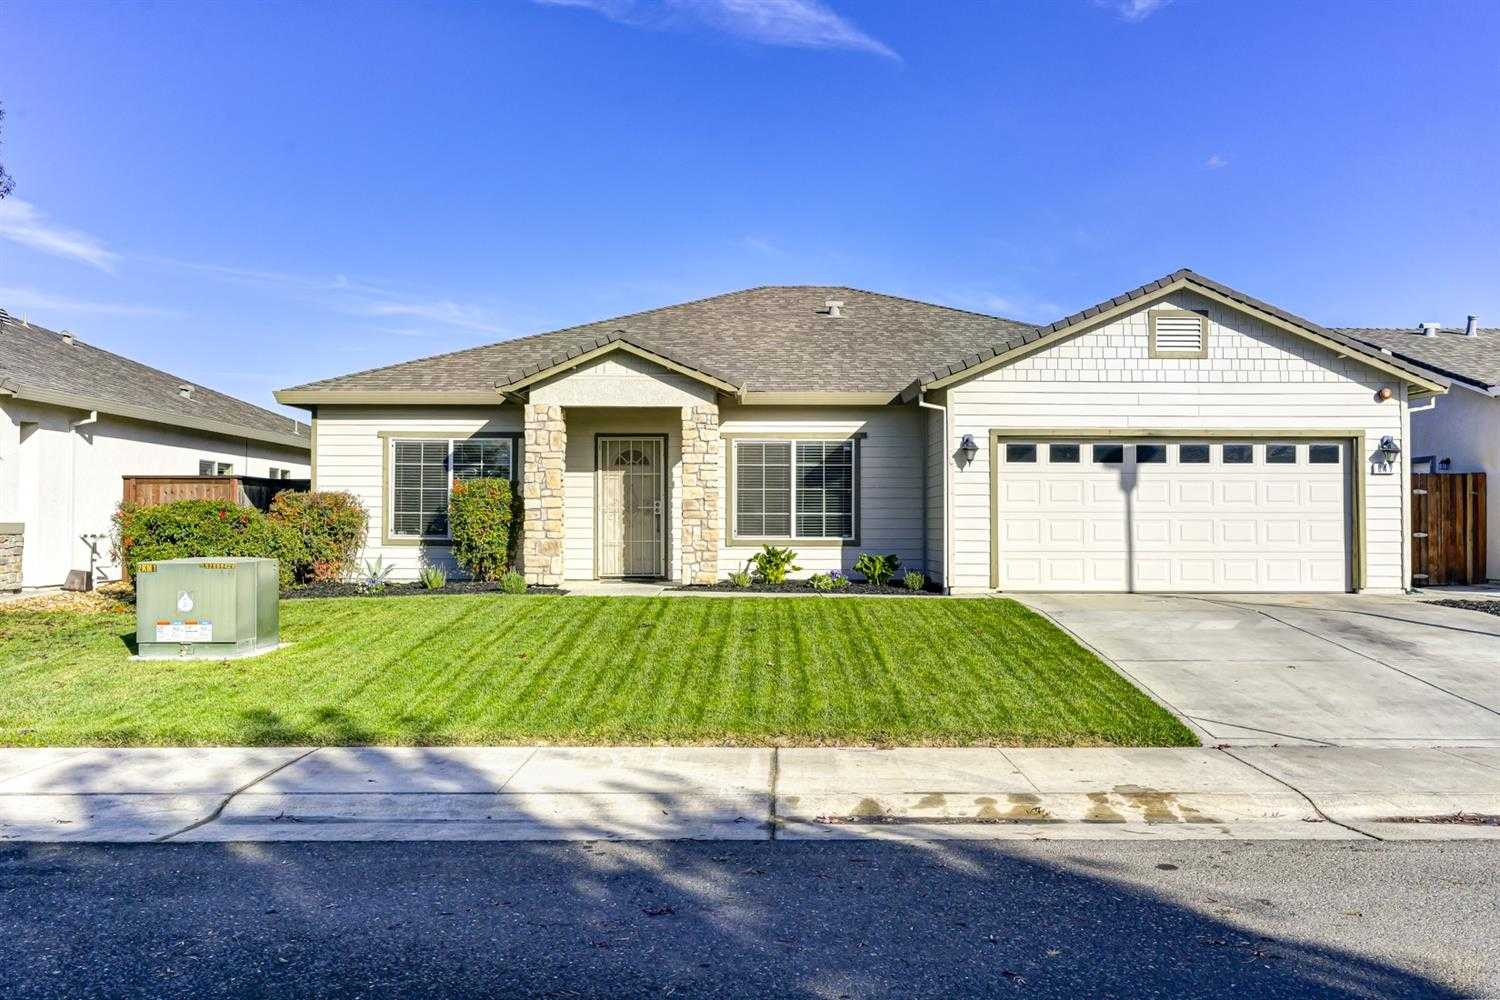 $435,000 - 4Br/2Ba -  for Sale in Acme Acres, Sacramento